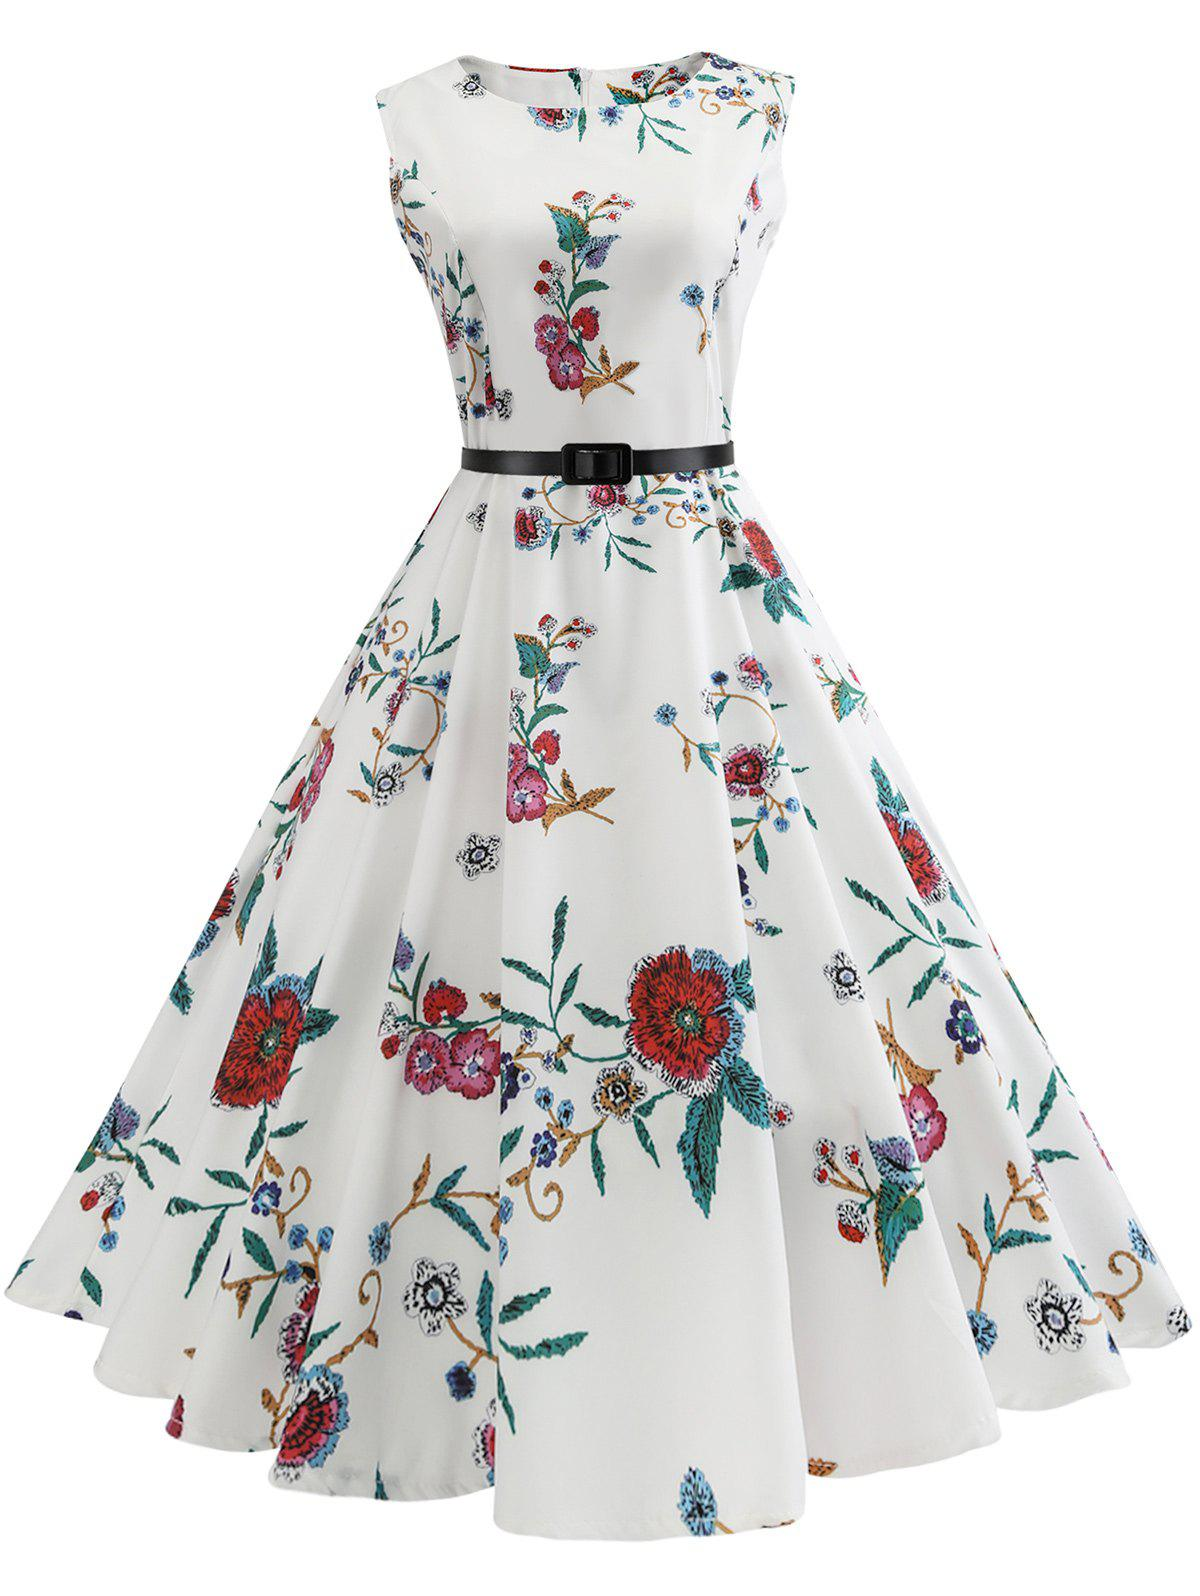 Vintage Sleeveless Flower Print A Line DressWOMEN<br><br>Size: XL; Color: WHITE; Style: Vintage; Material: Cotton,Polyester; Silhouette: A-Line; Dresses Length: Knee-Length; Neckline: Round Collar; Sleeve Length: Sleeveless; Pattern Type: Floral; With Belt: Yes; Season: Fall,Summer; Weight: 0.3500kg; Package Contents: 1 x Dress  1 x Belt;